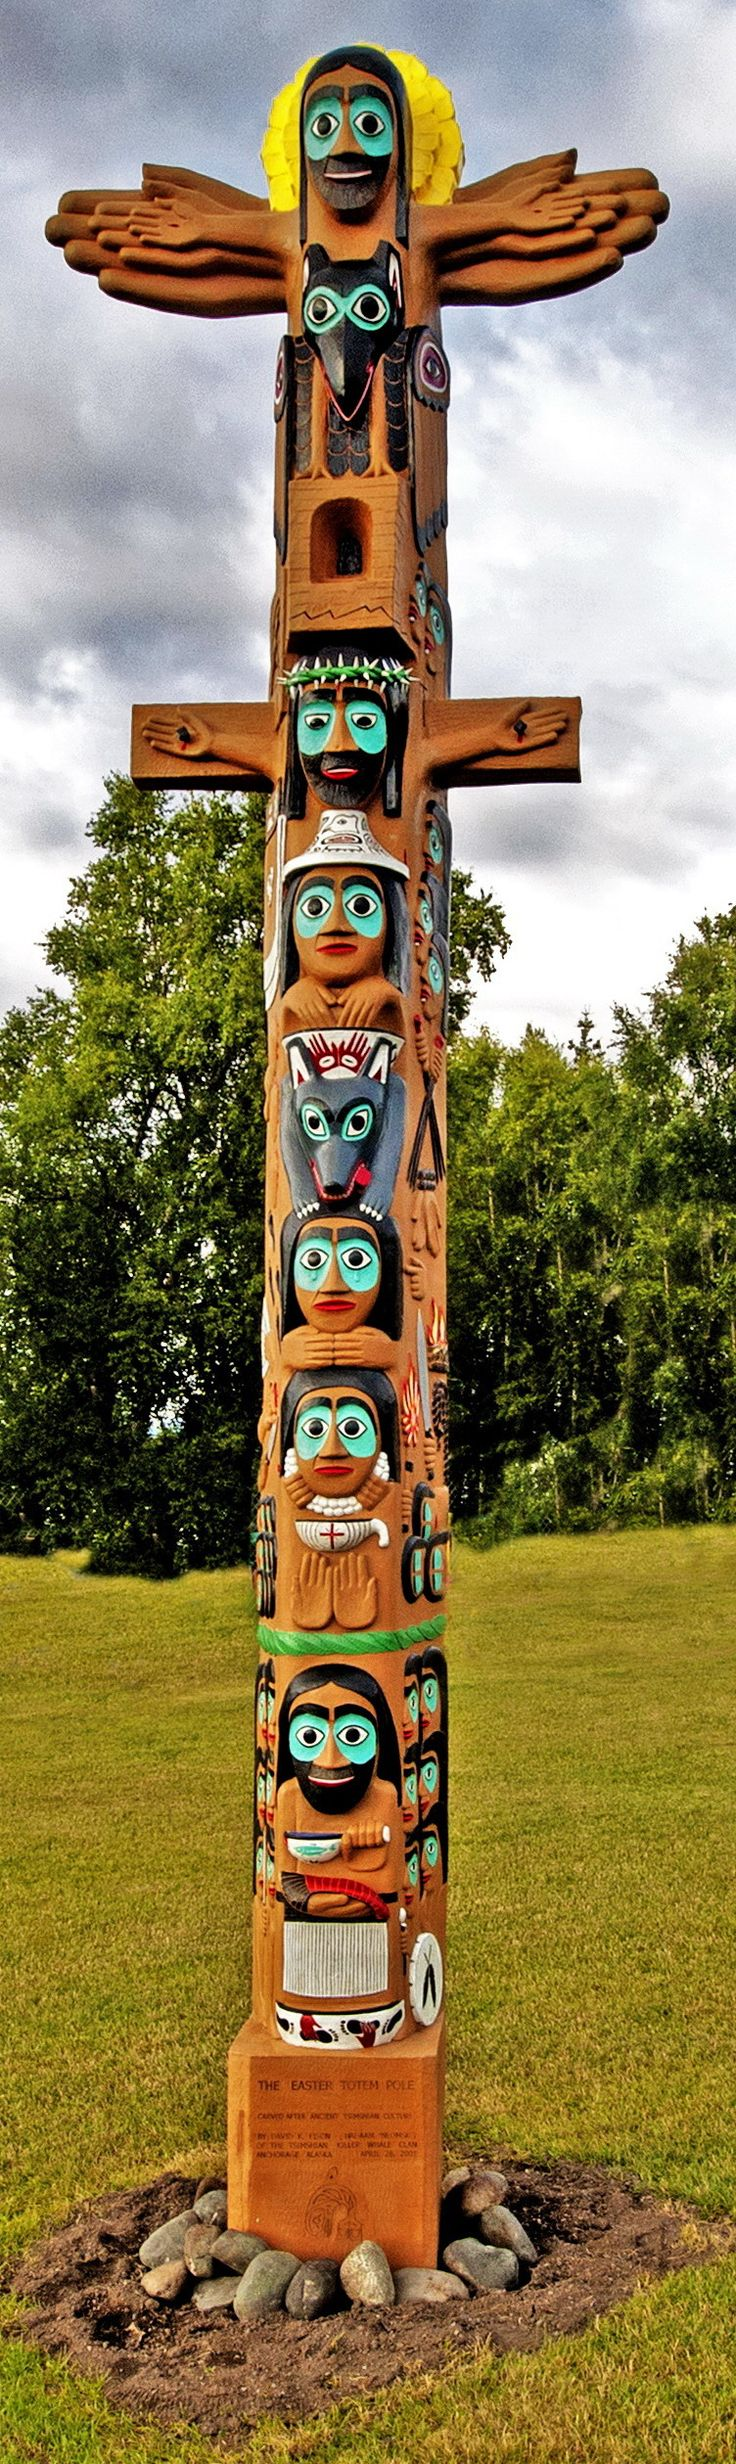 Native American  totem poles paintings | Christmas and Easter Totem Poles by David K. Fison | The Jesus ... | 123° pl   ☛ ۞     https://de.pinterest.com/grzegorztyrala/mitologia/